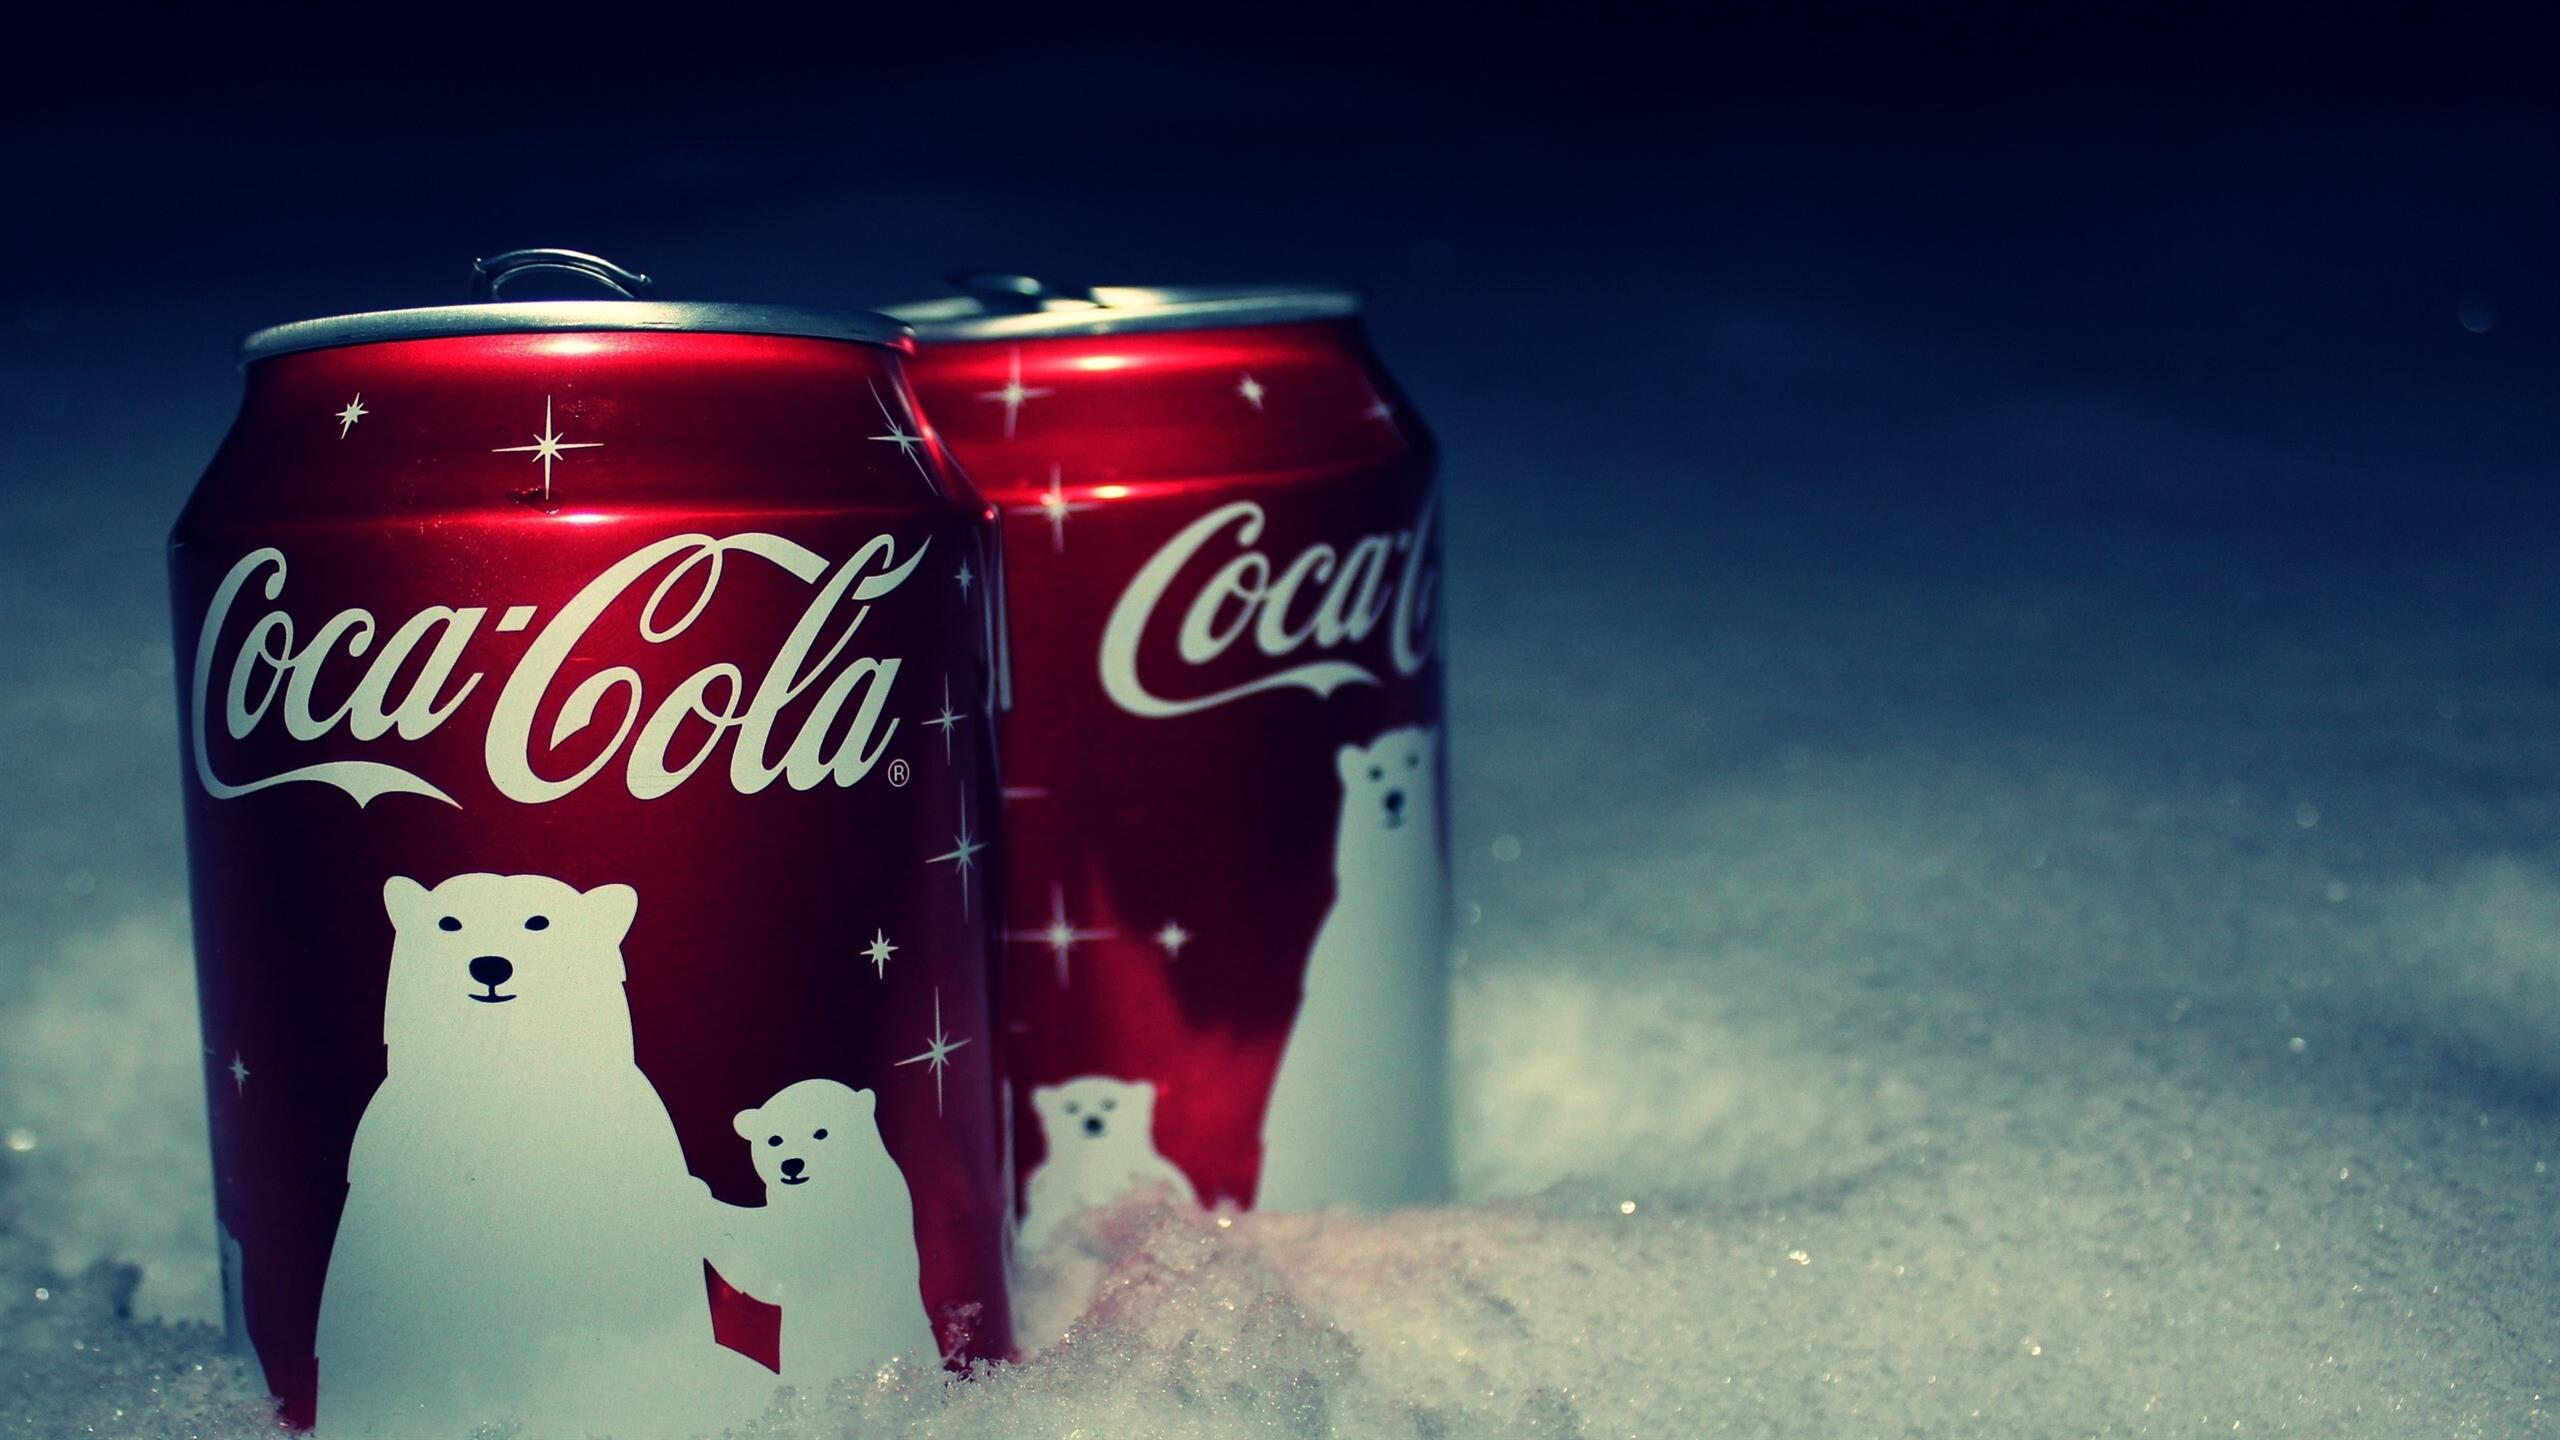 2560x1440 Coca Cola on Christmas Holiday Wallpaper